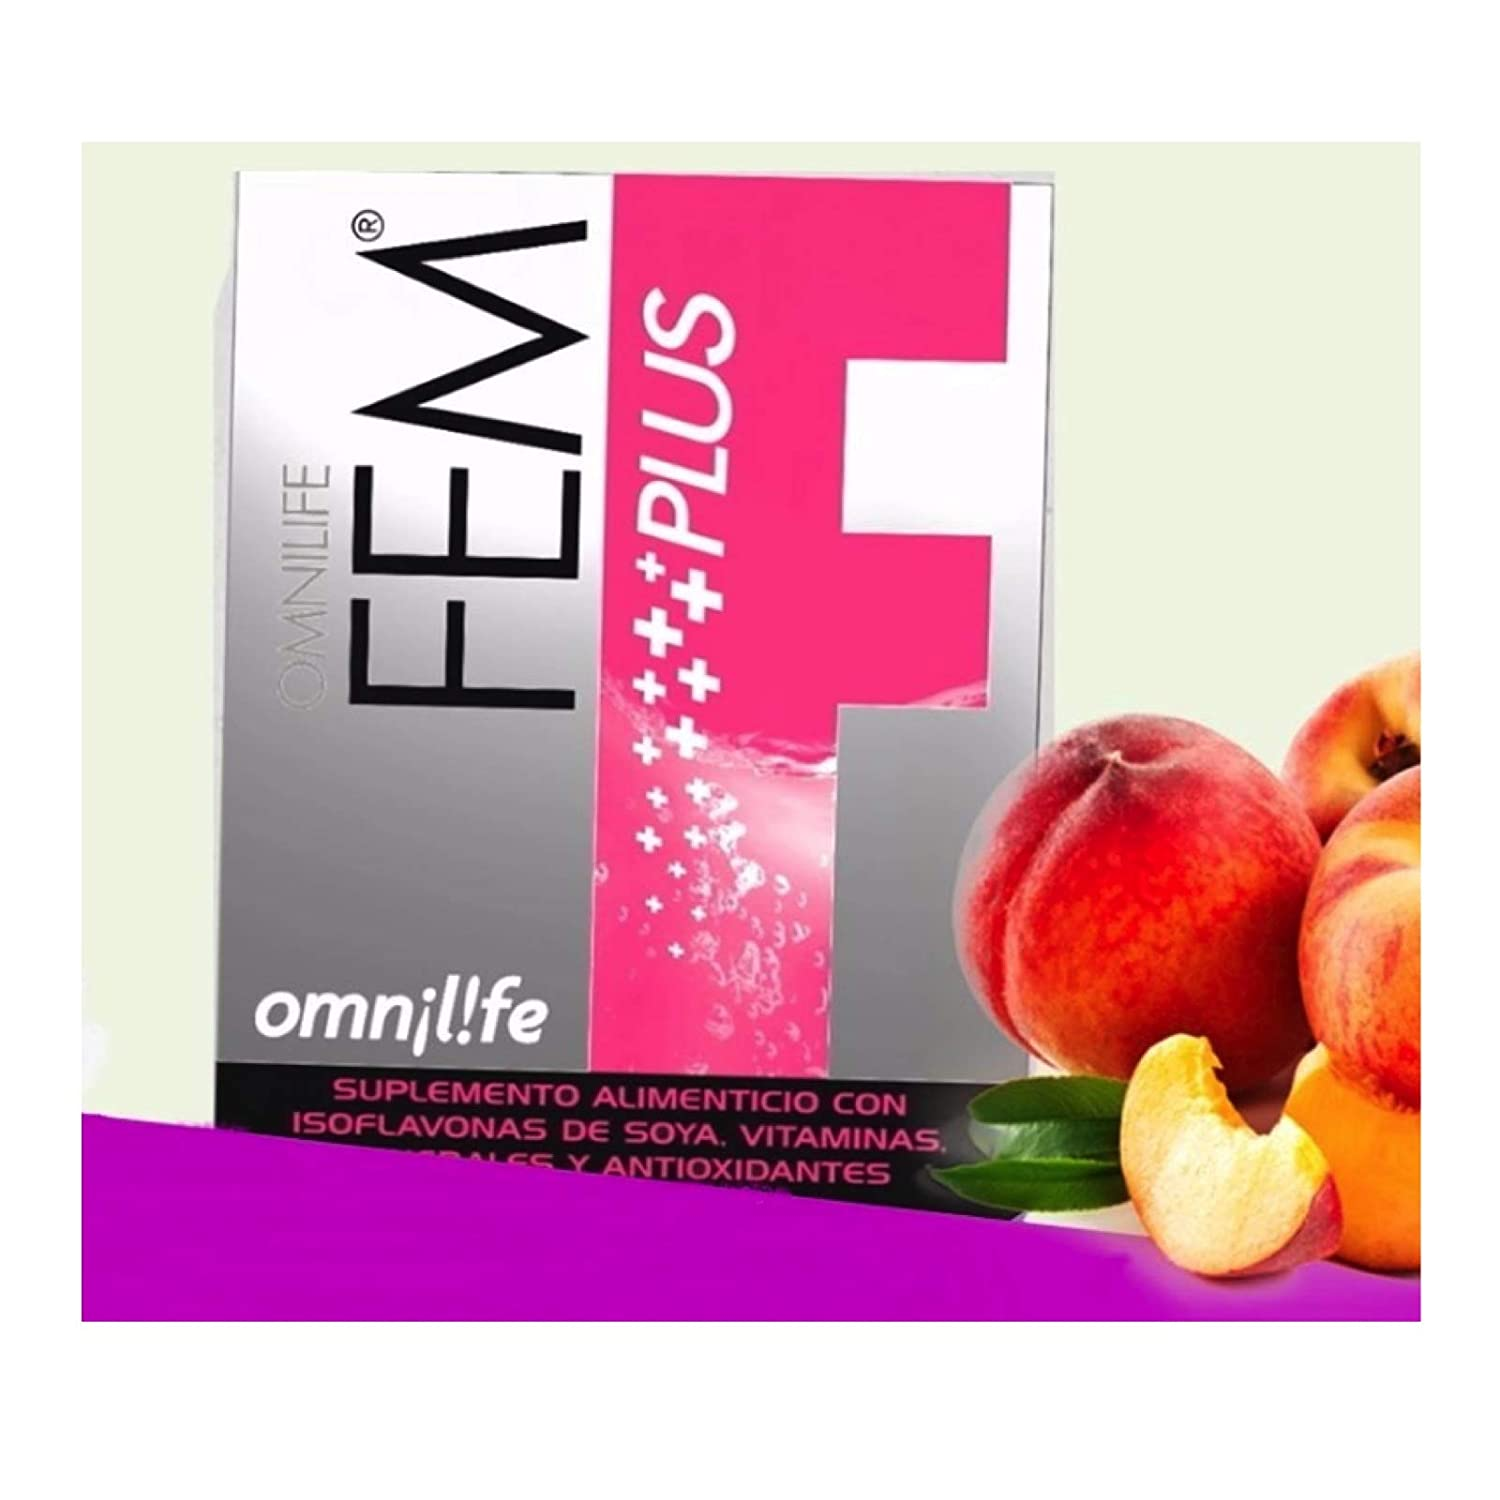 Amazon.com: Omnilife Oml Fem Plus Hormonal Balance: Health & Personal Care